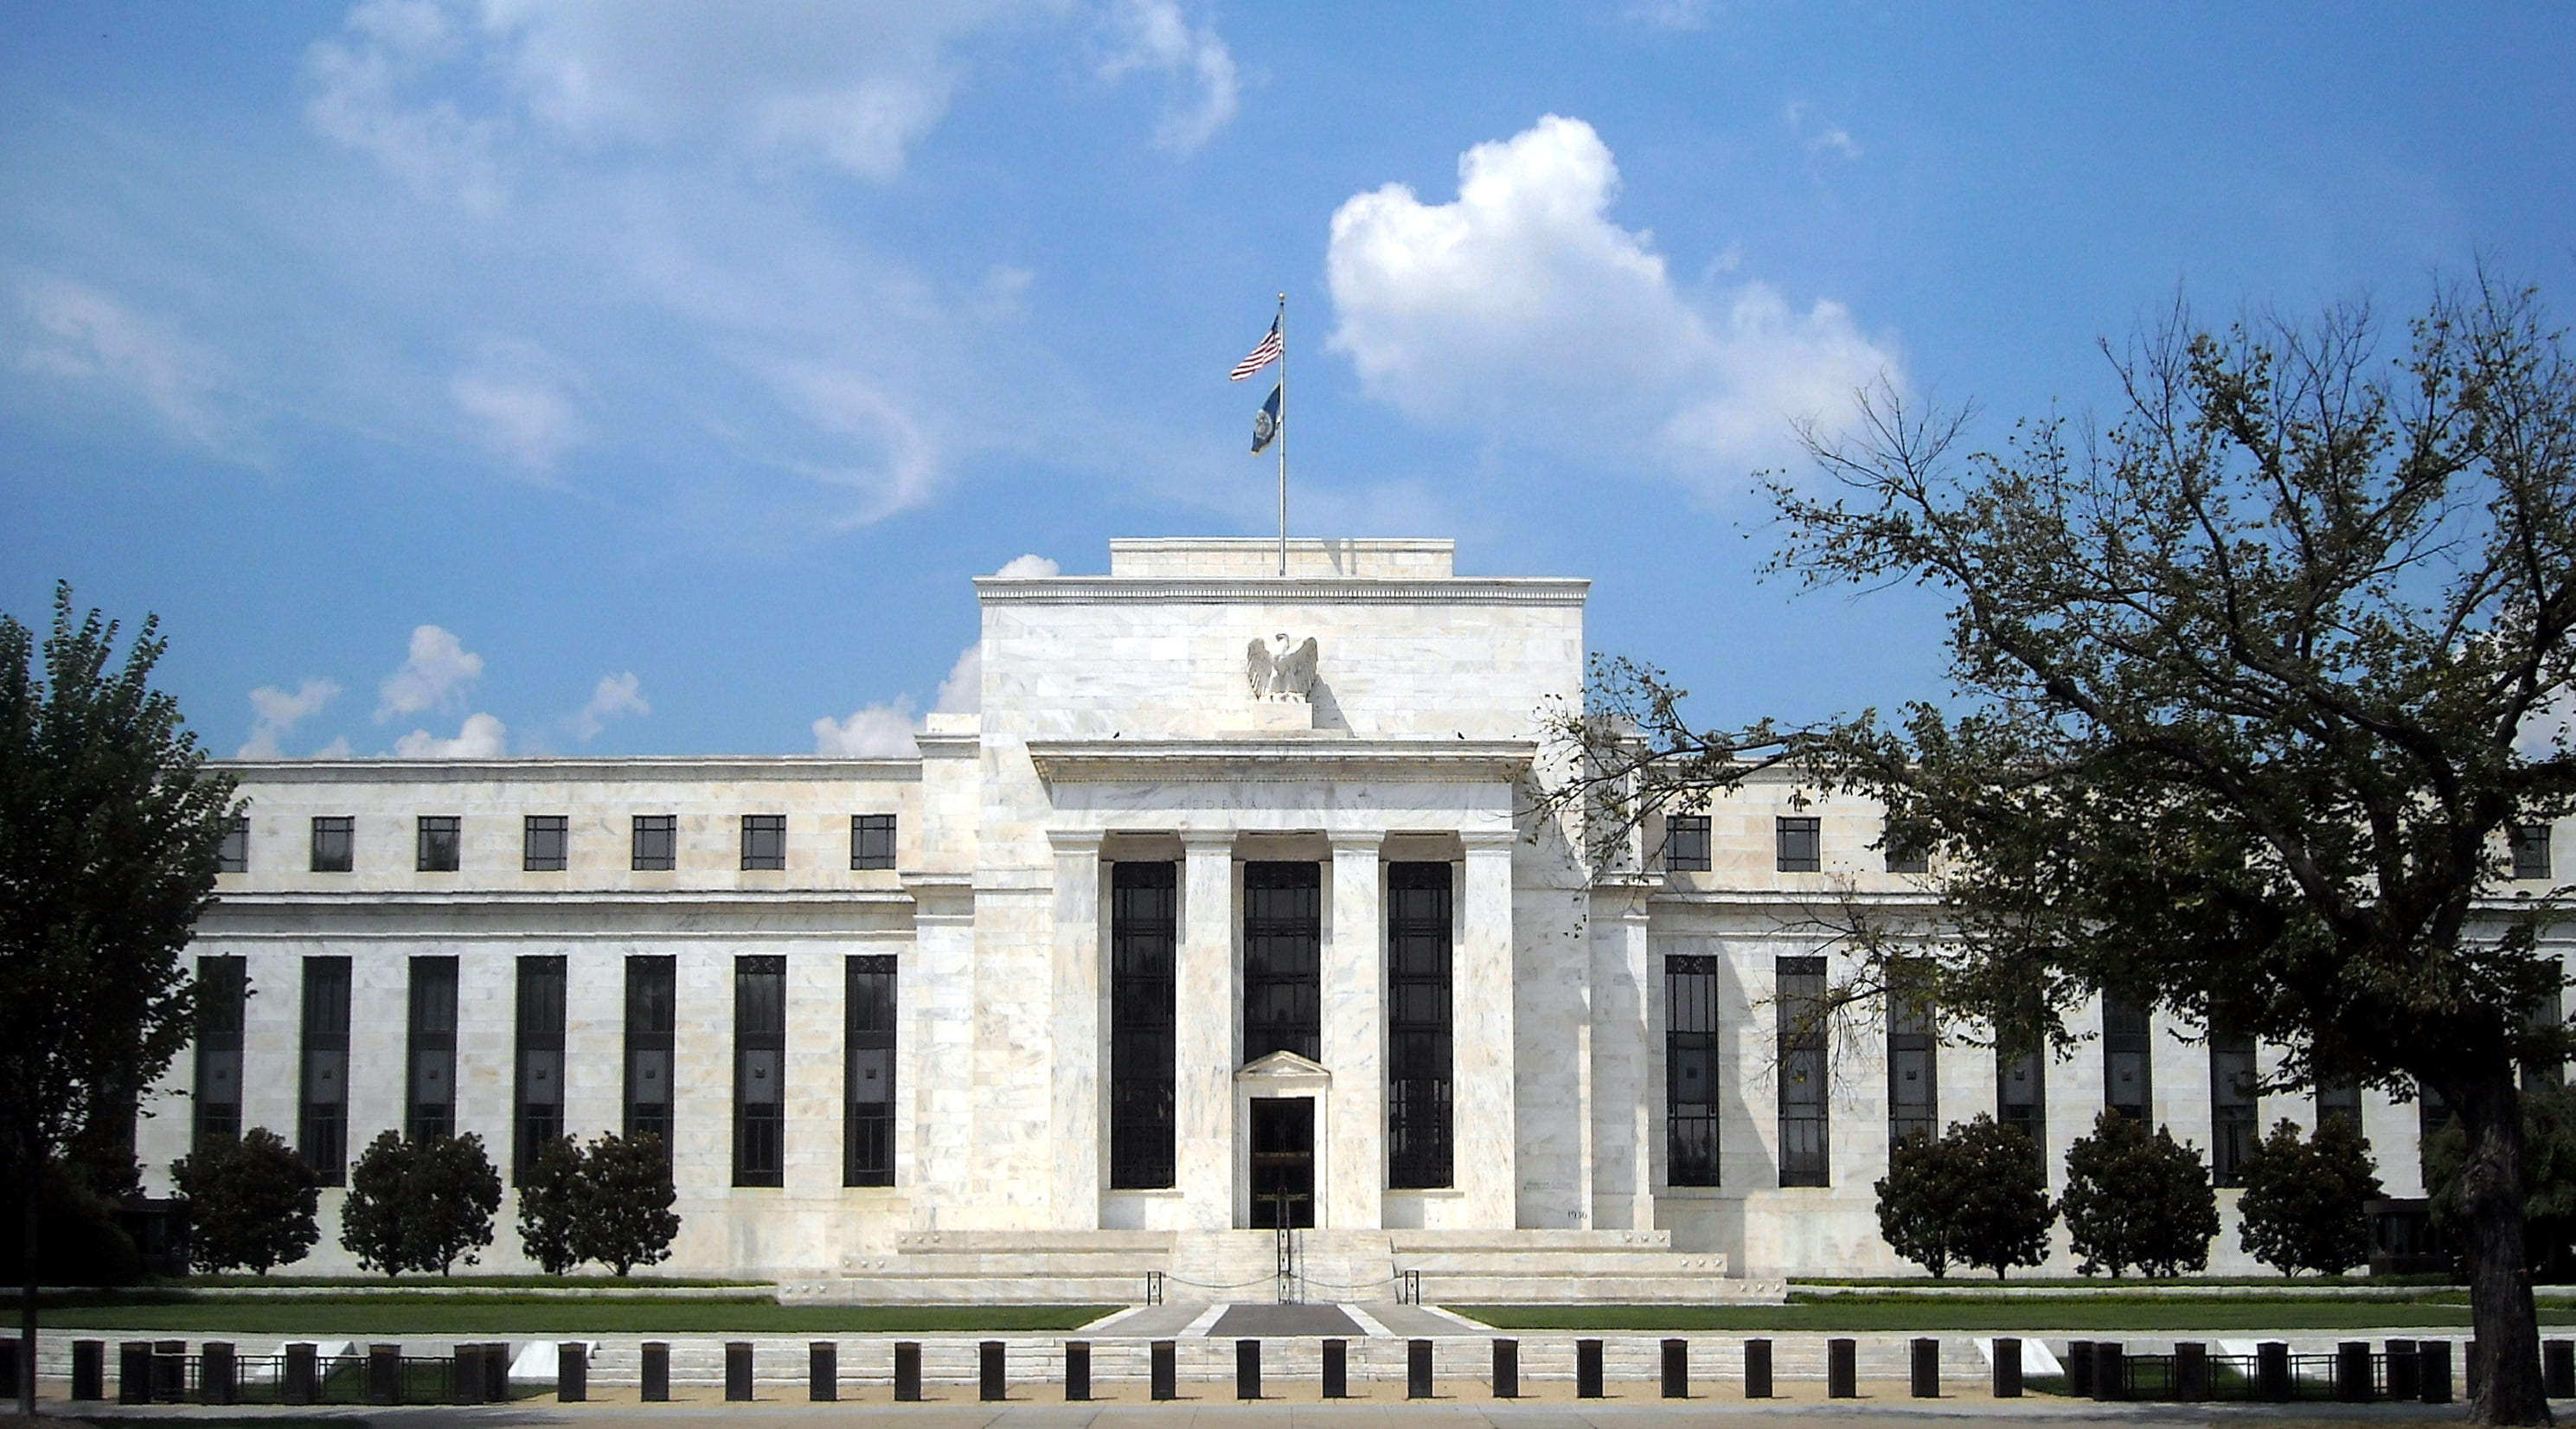 Bitcoin Vs Federal Reserve, Which is Safer?